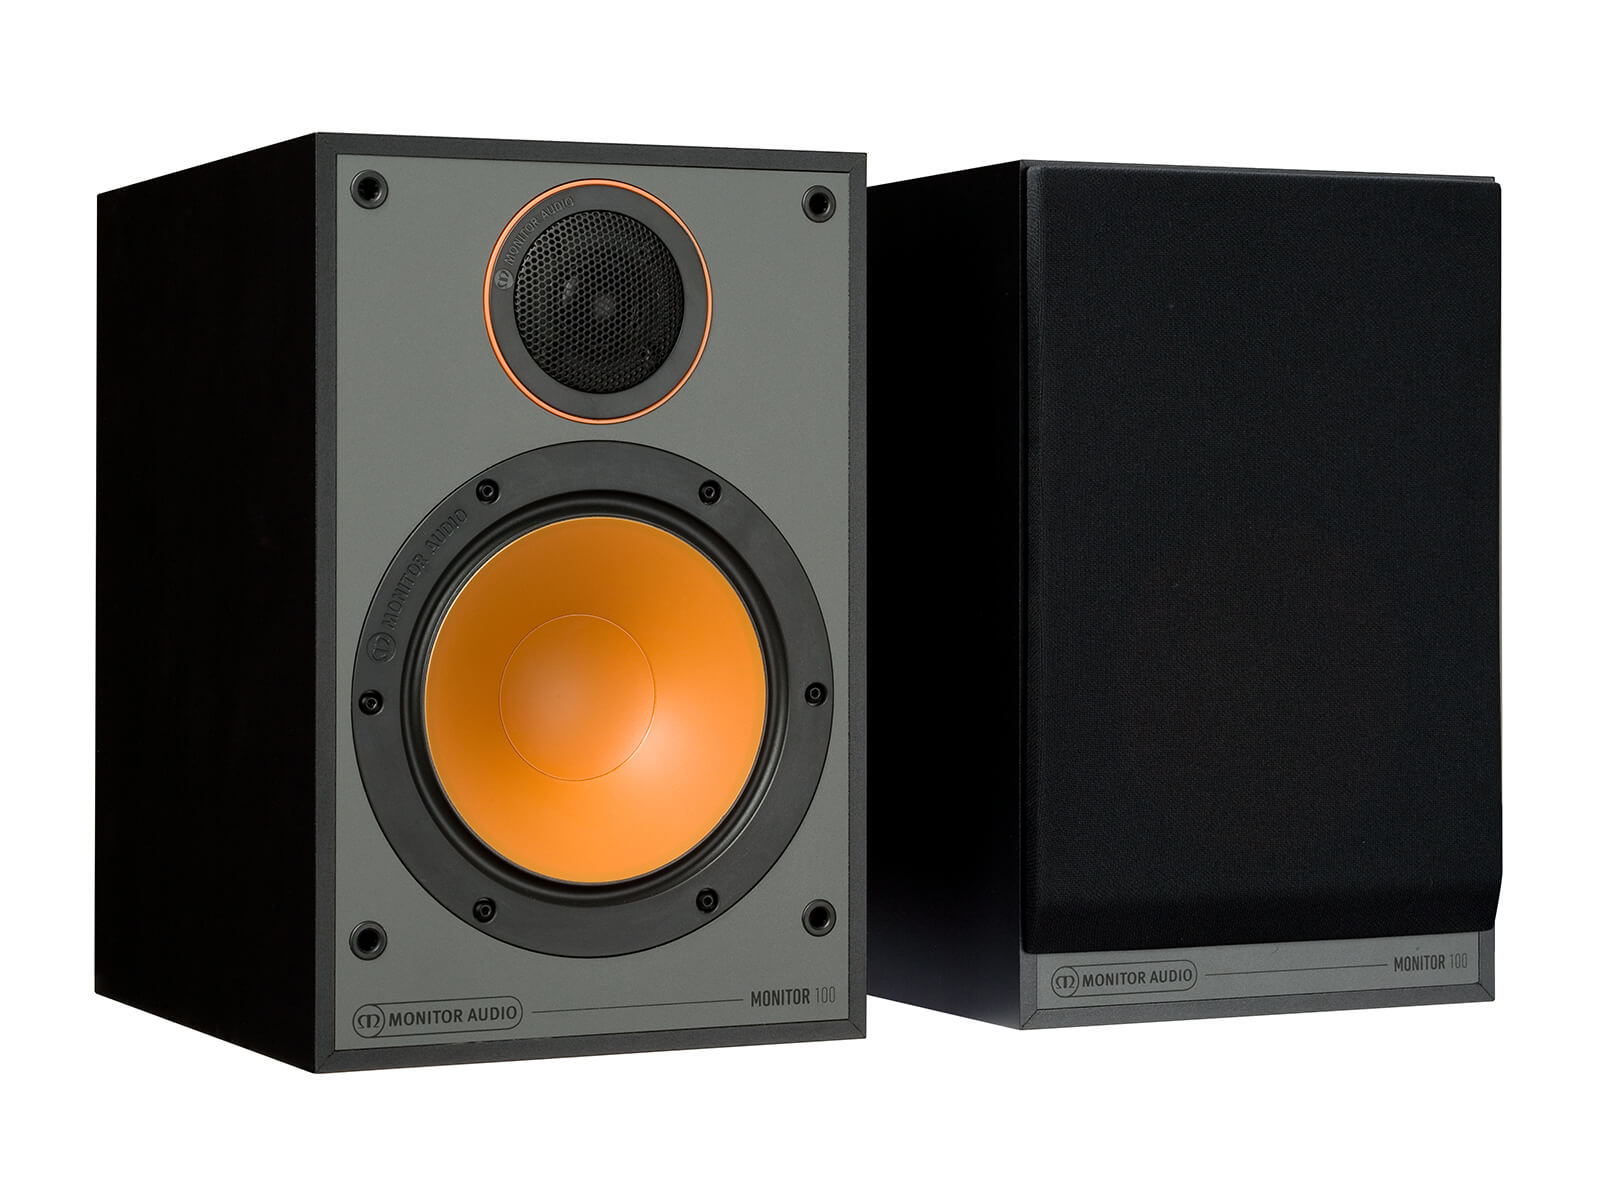 Monitor 100, bookshelf speakers, with and without grille in a black finish.